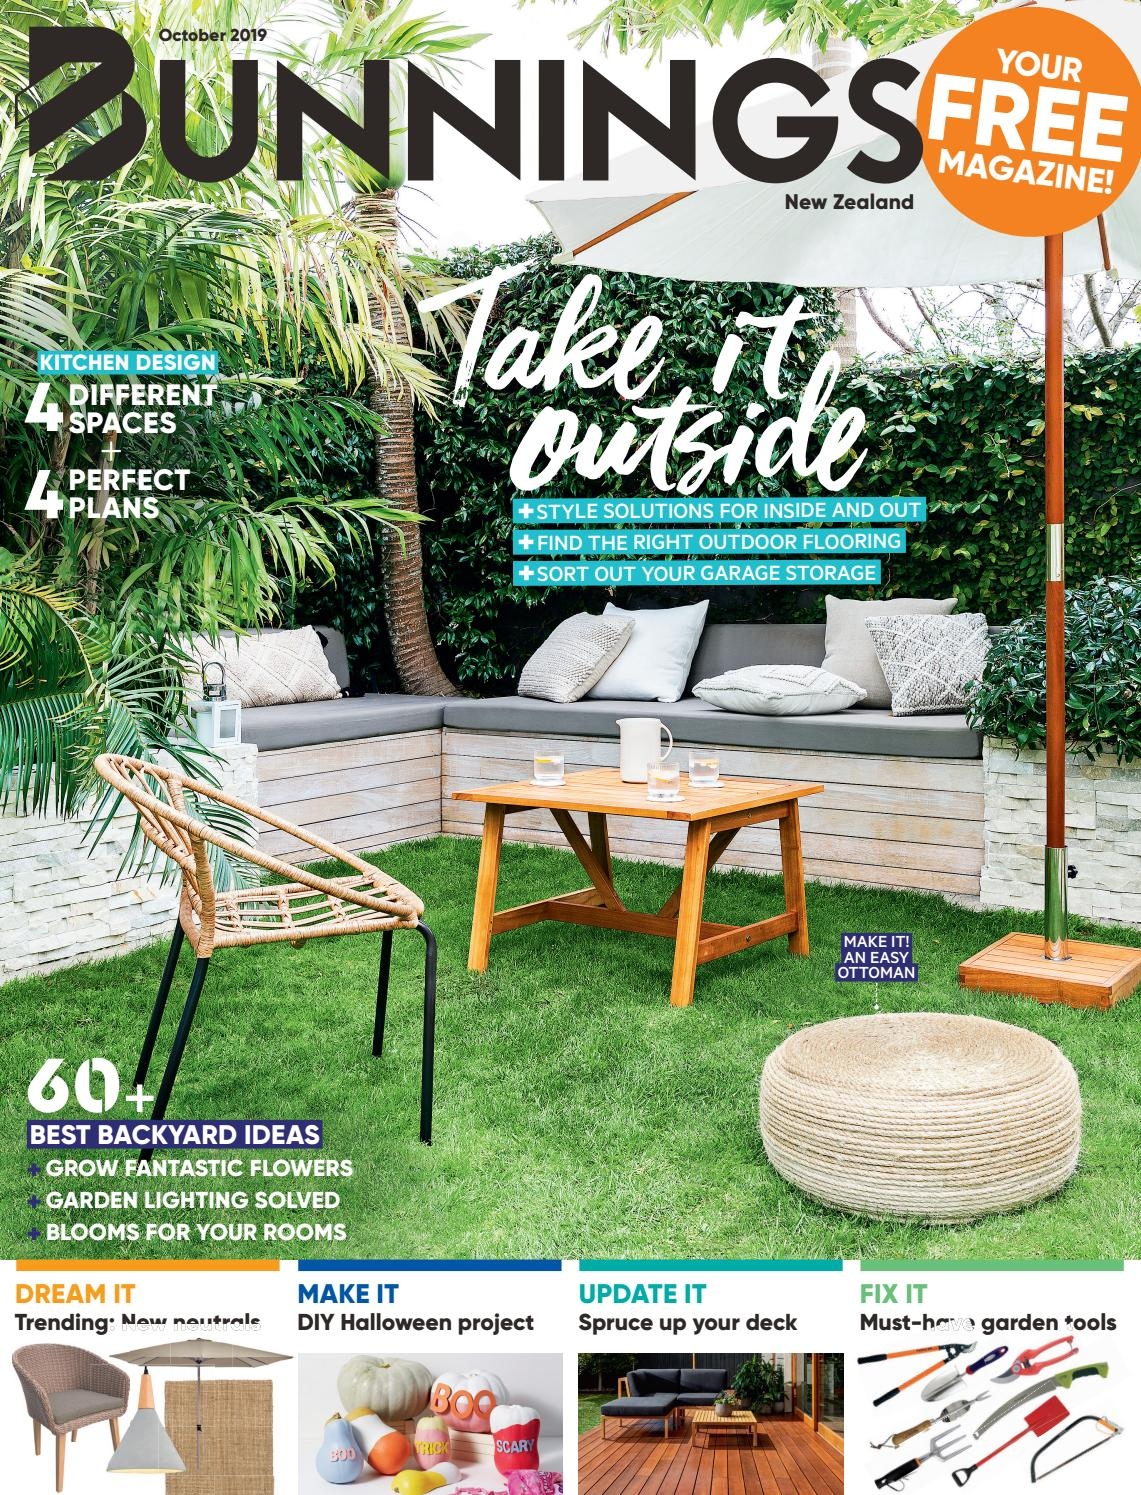 Bunnings Magazine Nz October 2019 By Bunnings Issuu